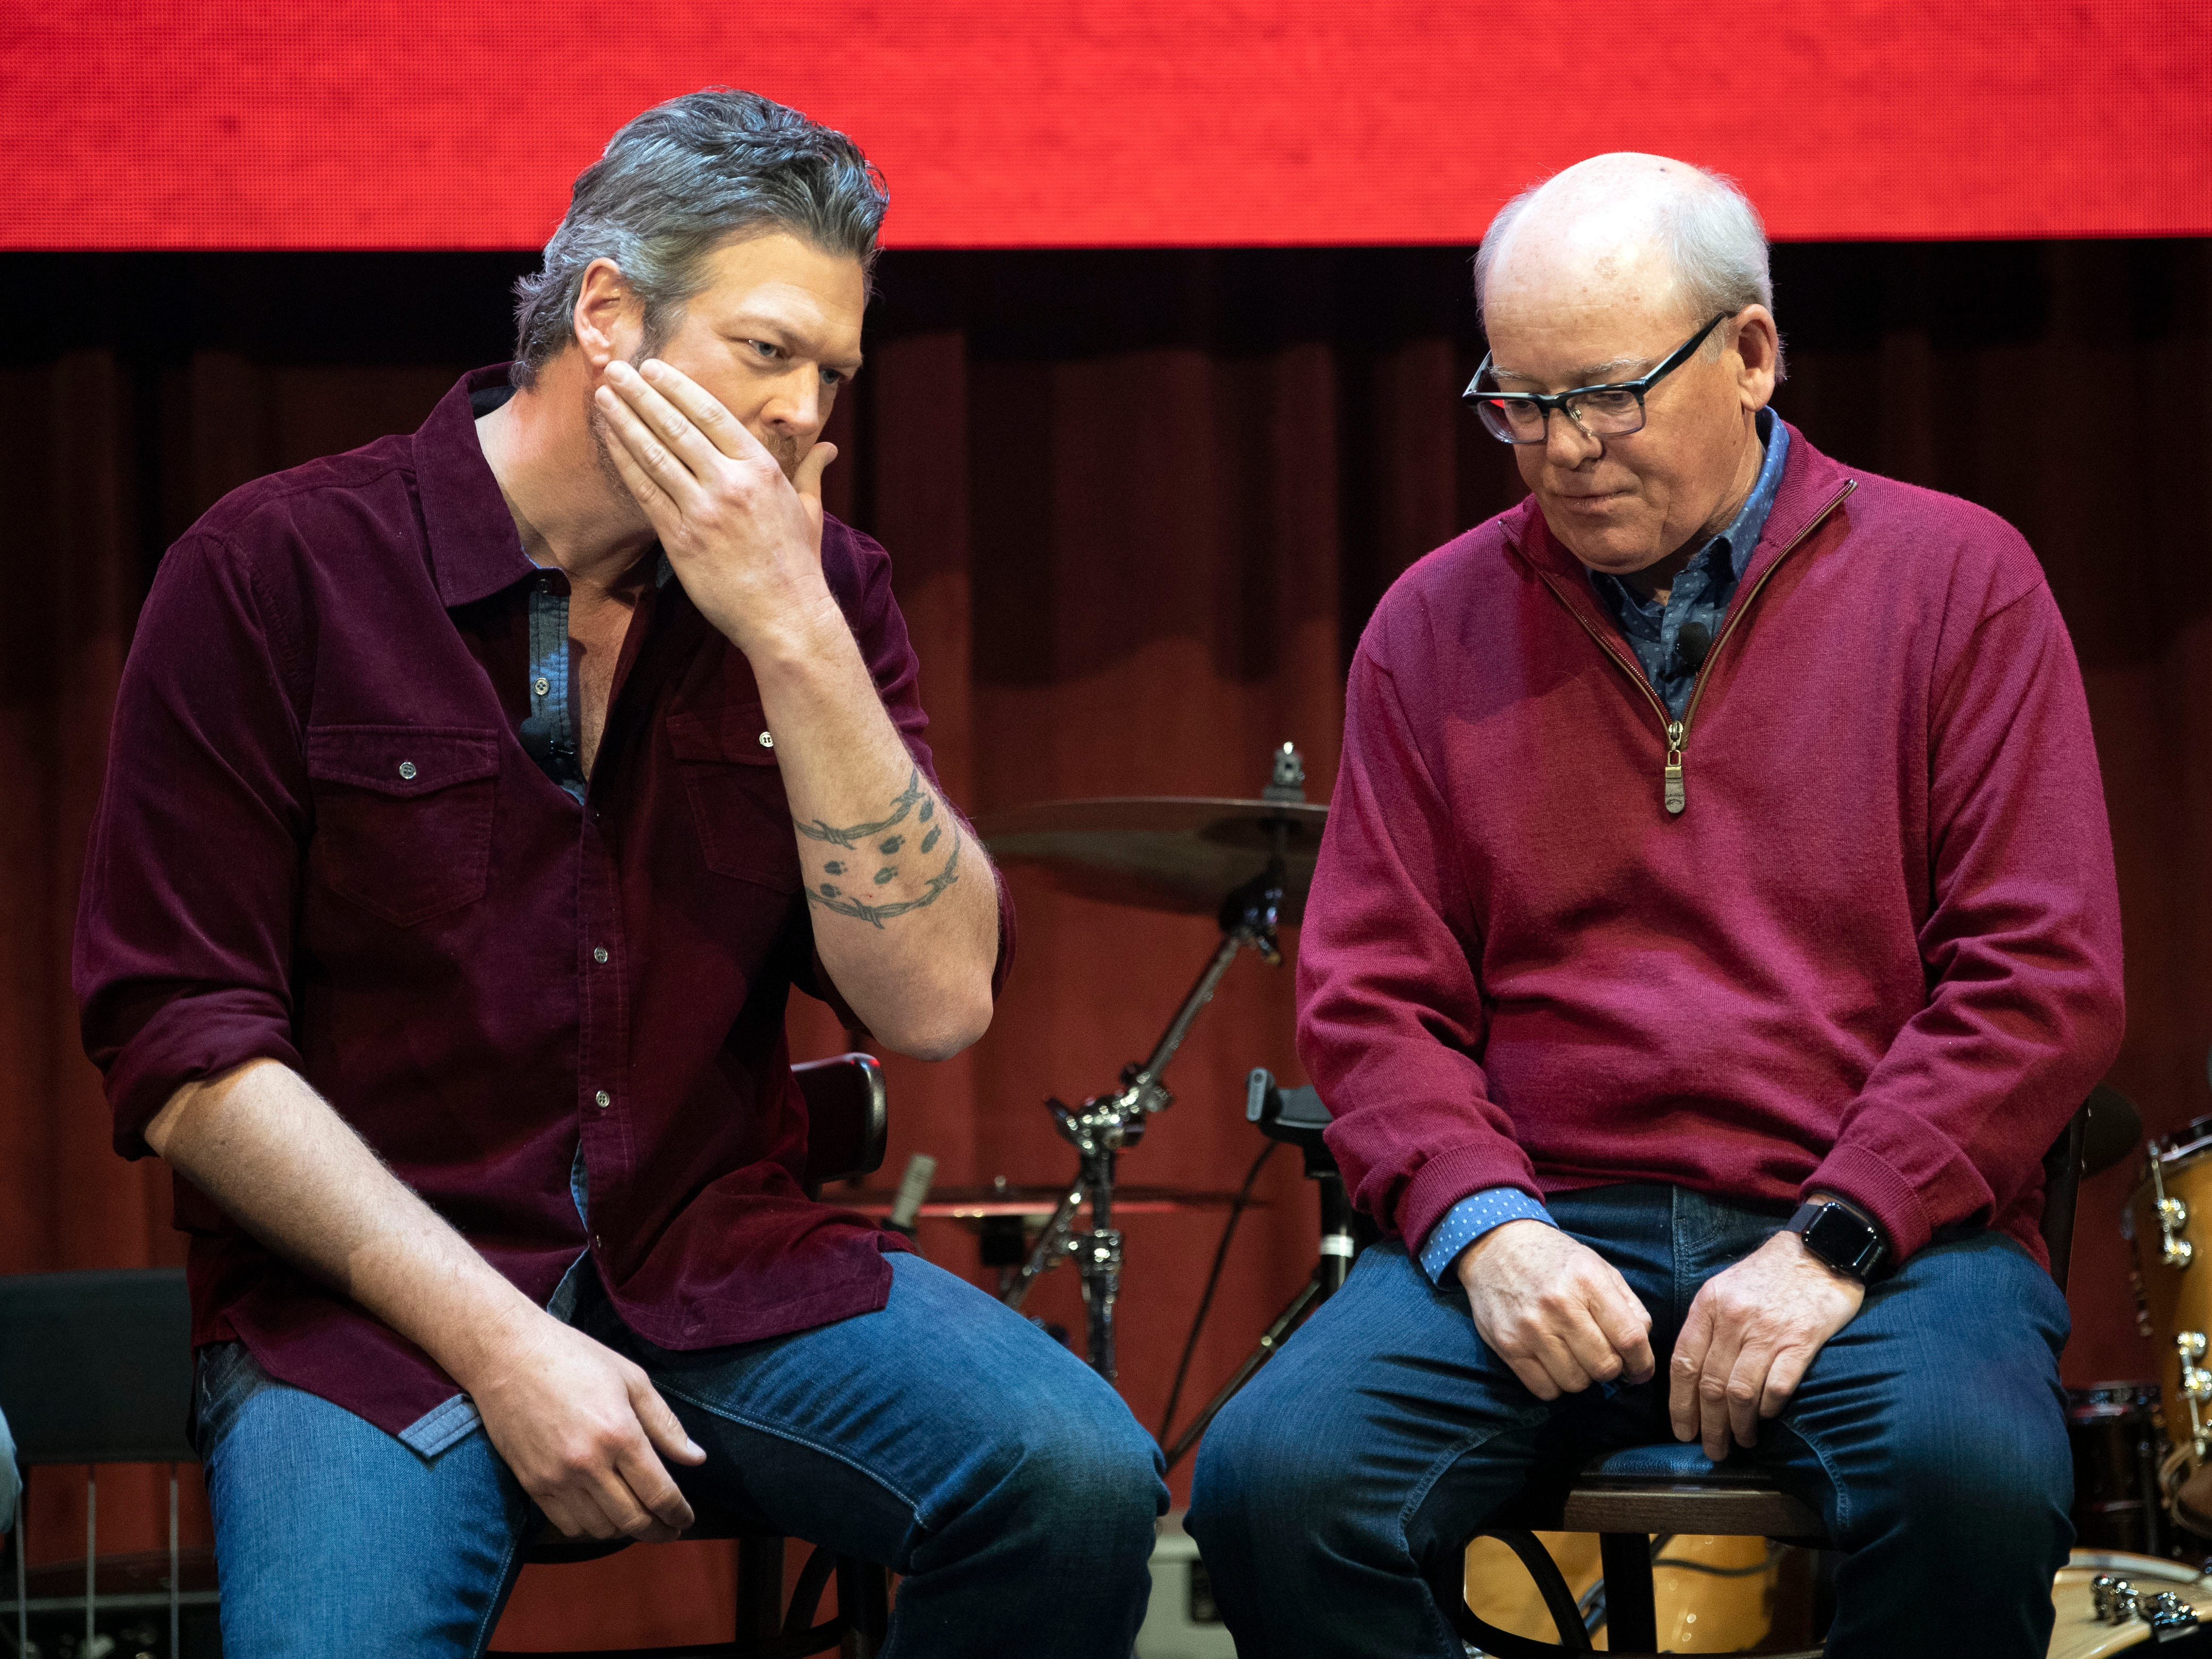 Blake Shelton, left, and business partner Colin Reed, CEO of Ryman Hospitality Properties, share short stories on stage during a news conference for the opening of Ole Big Red on Wednesday, March 13, 2019 for the grand opening of Ole Red.